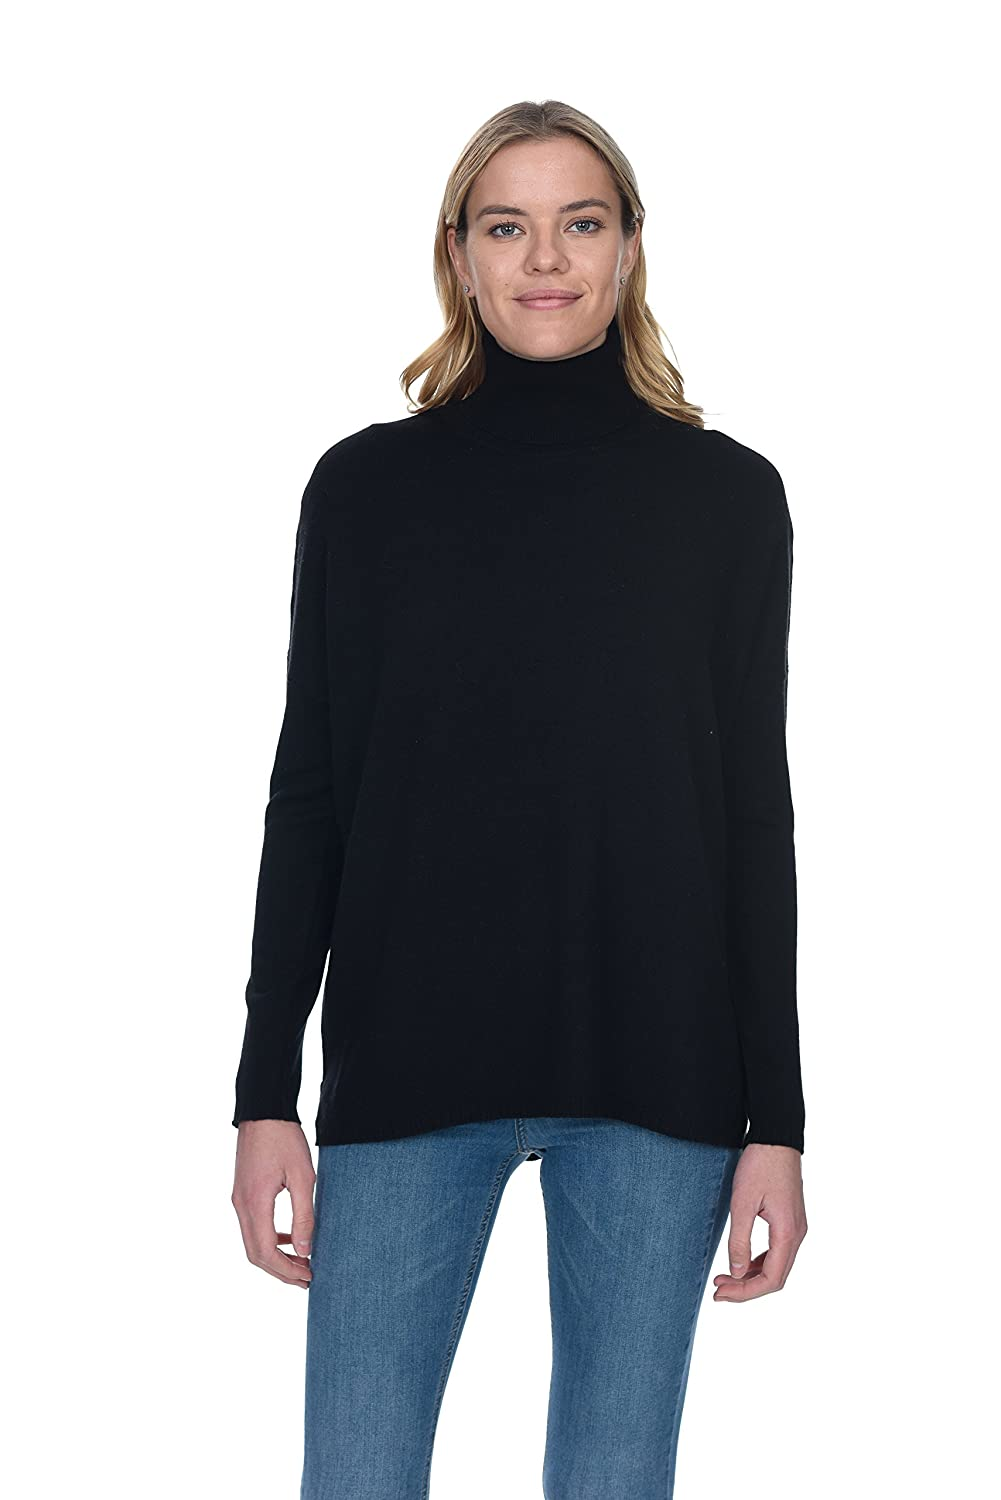 ee193f83afd State Cashmere Women's 100% Pure Cashmere Tunic Turtleneck Sweater at  Amazon Women's Clothing store: